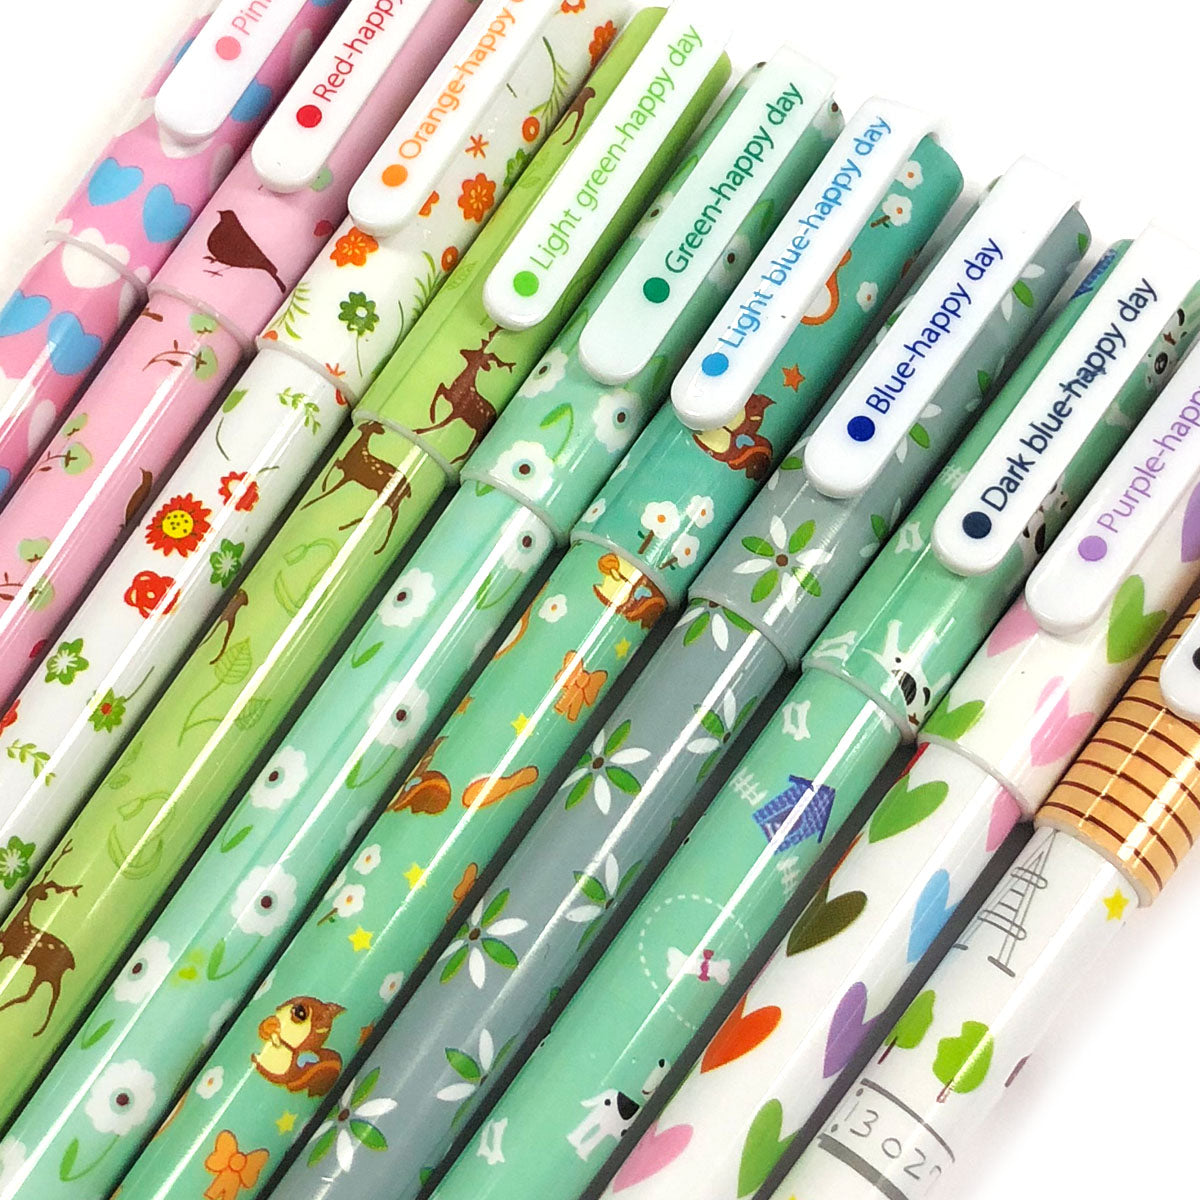 Wrapables® Cute Novelty Gel Ink Pens, 0.38mm Fine Point (Set of 10) for School, Office, Stationery